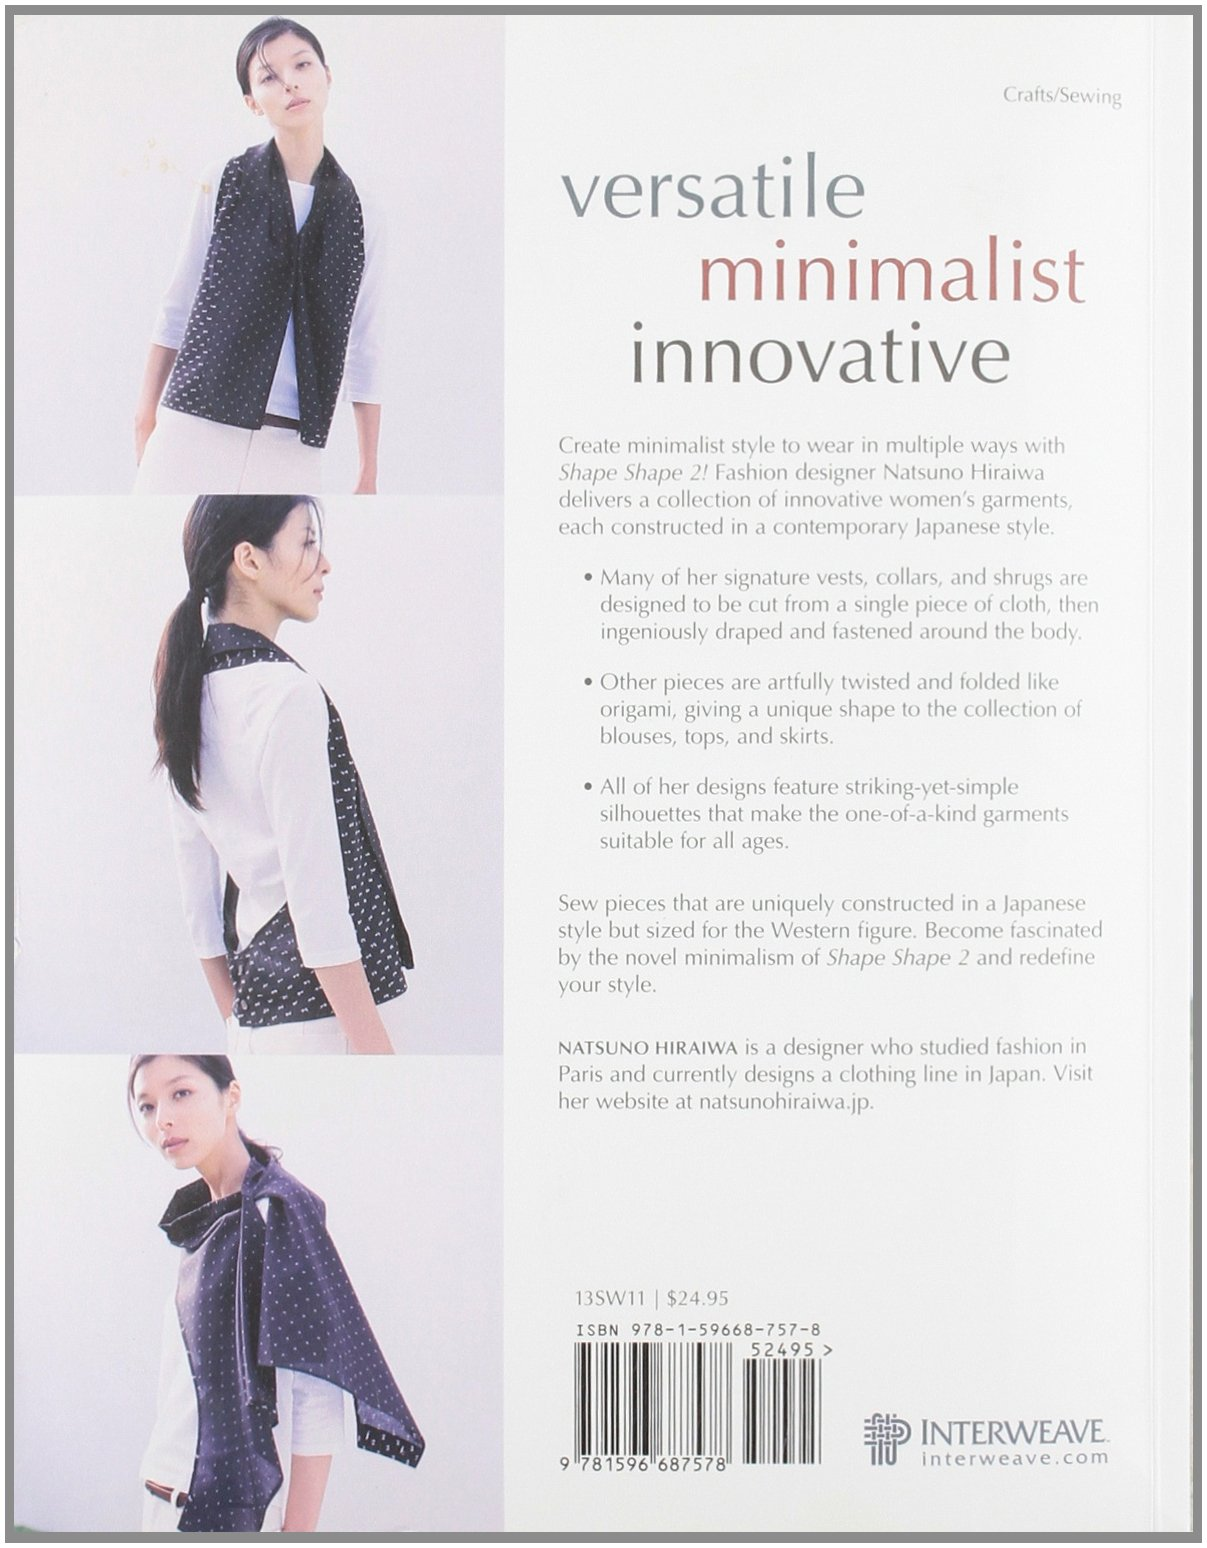 Shape shape 2 sewing for minimalist style natsuno hiraiwa shape shape 2 sewing for minimalist style natsuno hiraiwa hiraiwa natsuno 0499991618590 amazon books jeuxipadfo Image collections